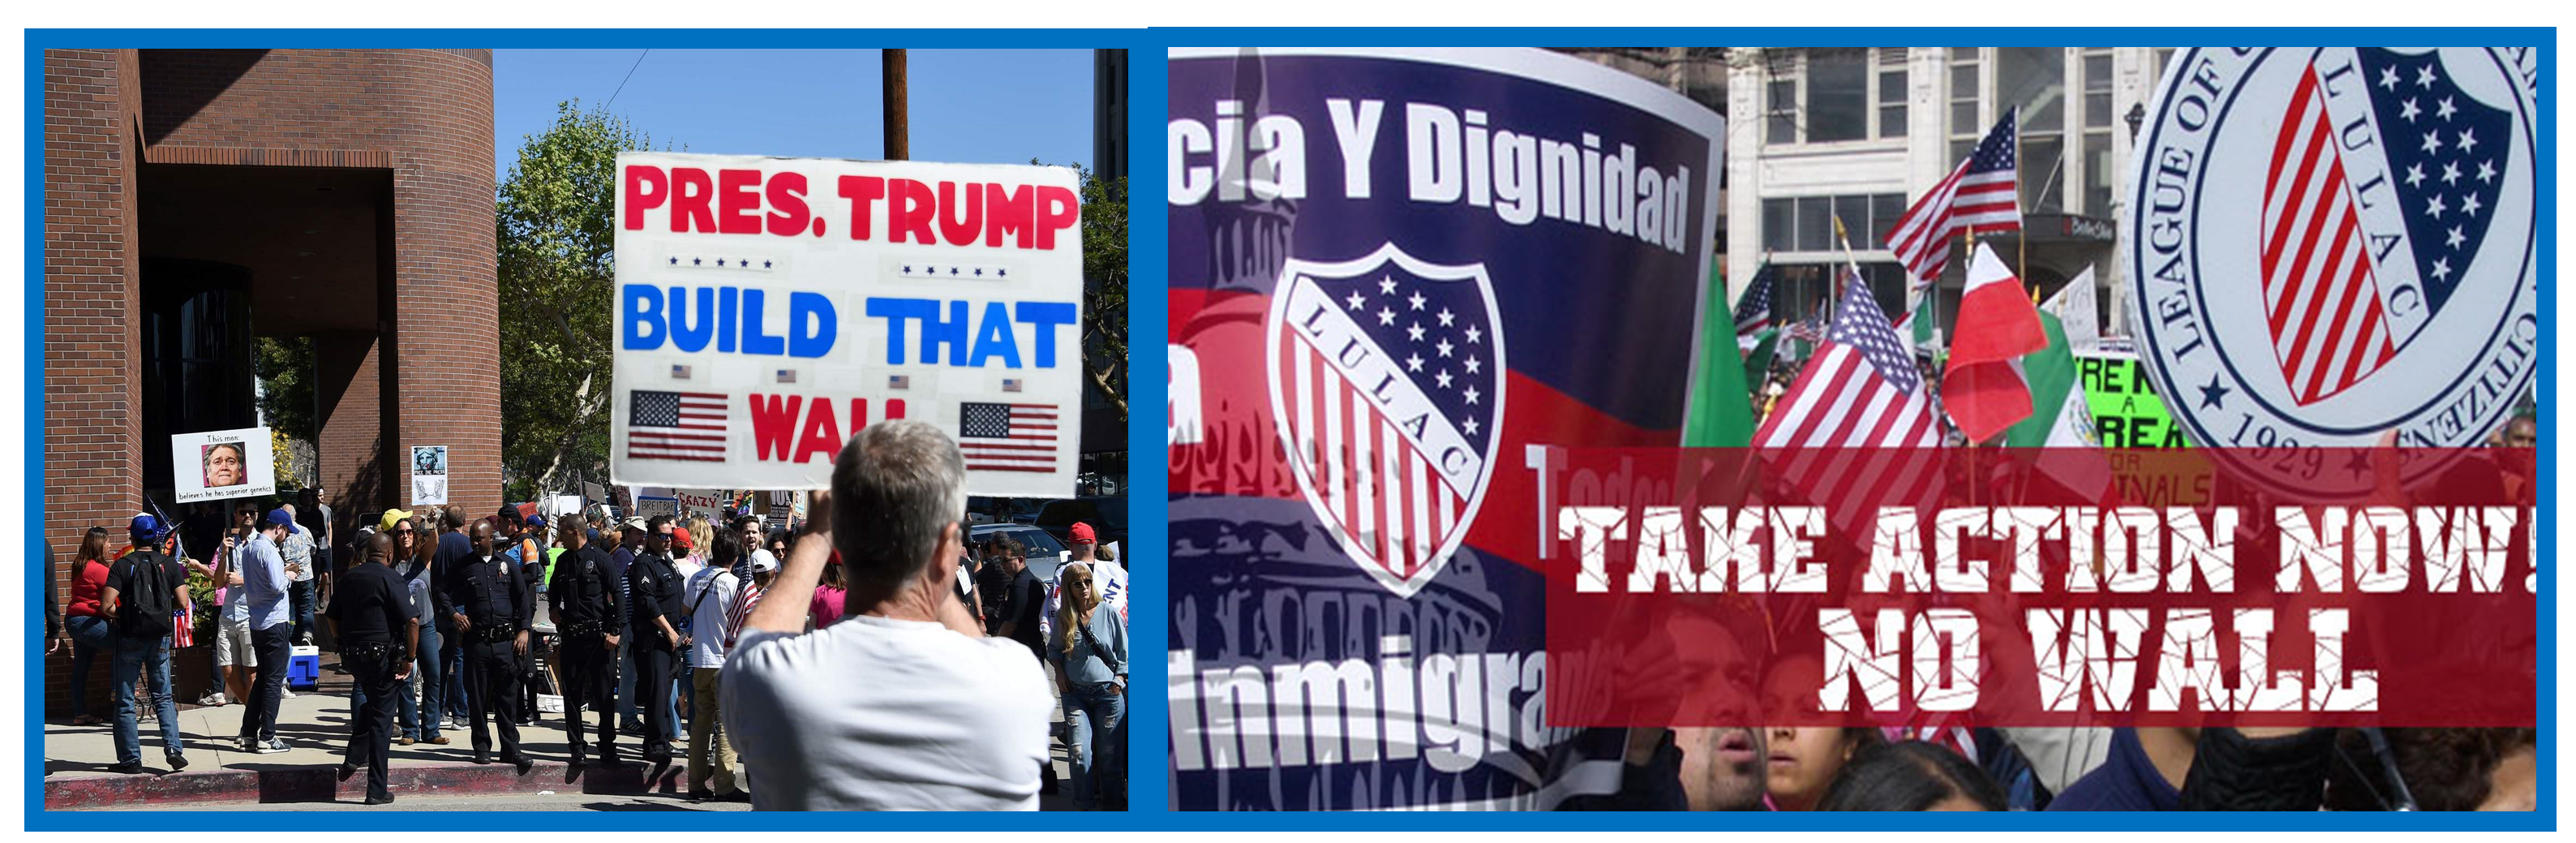 Photos of protesters on both sides of the border wall issue.